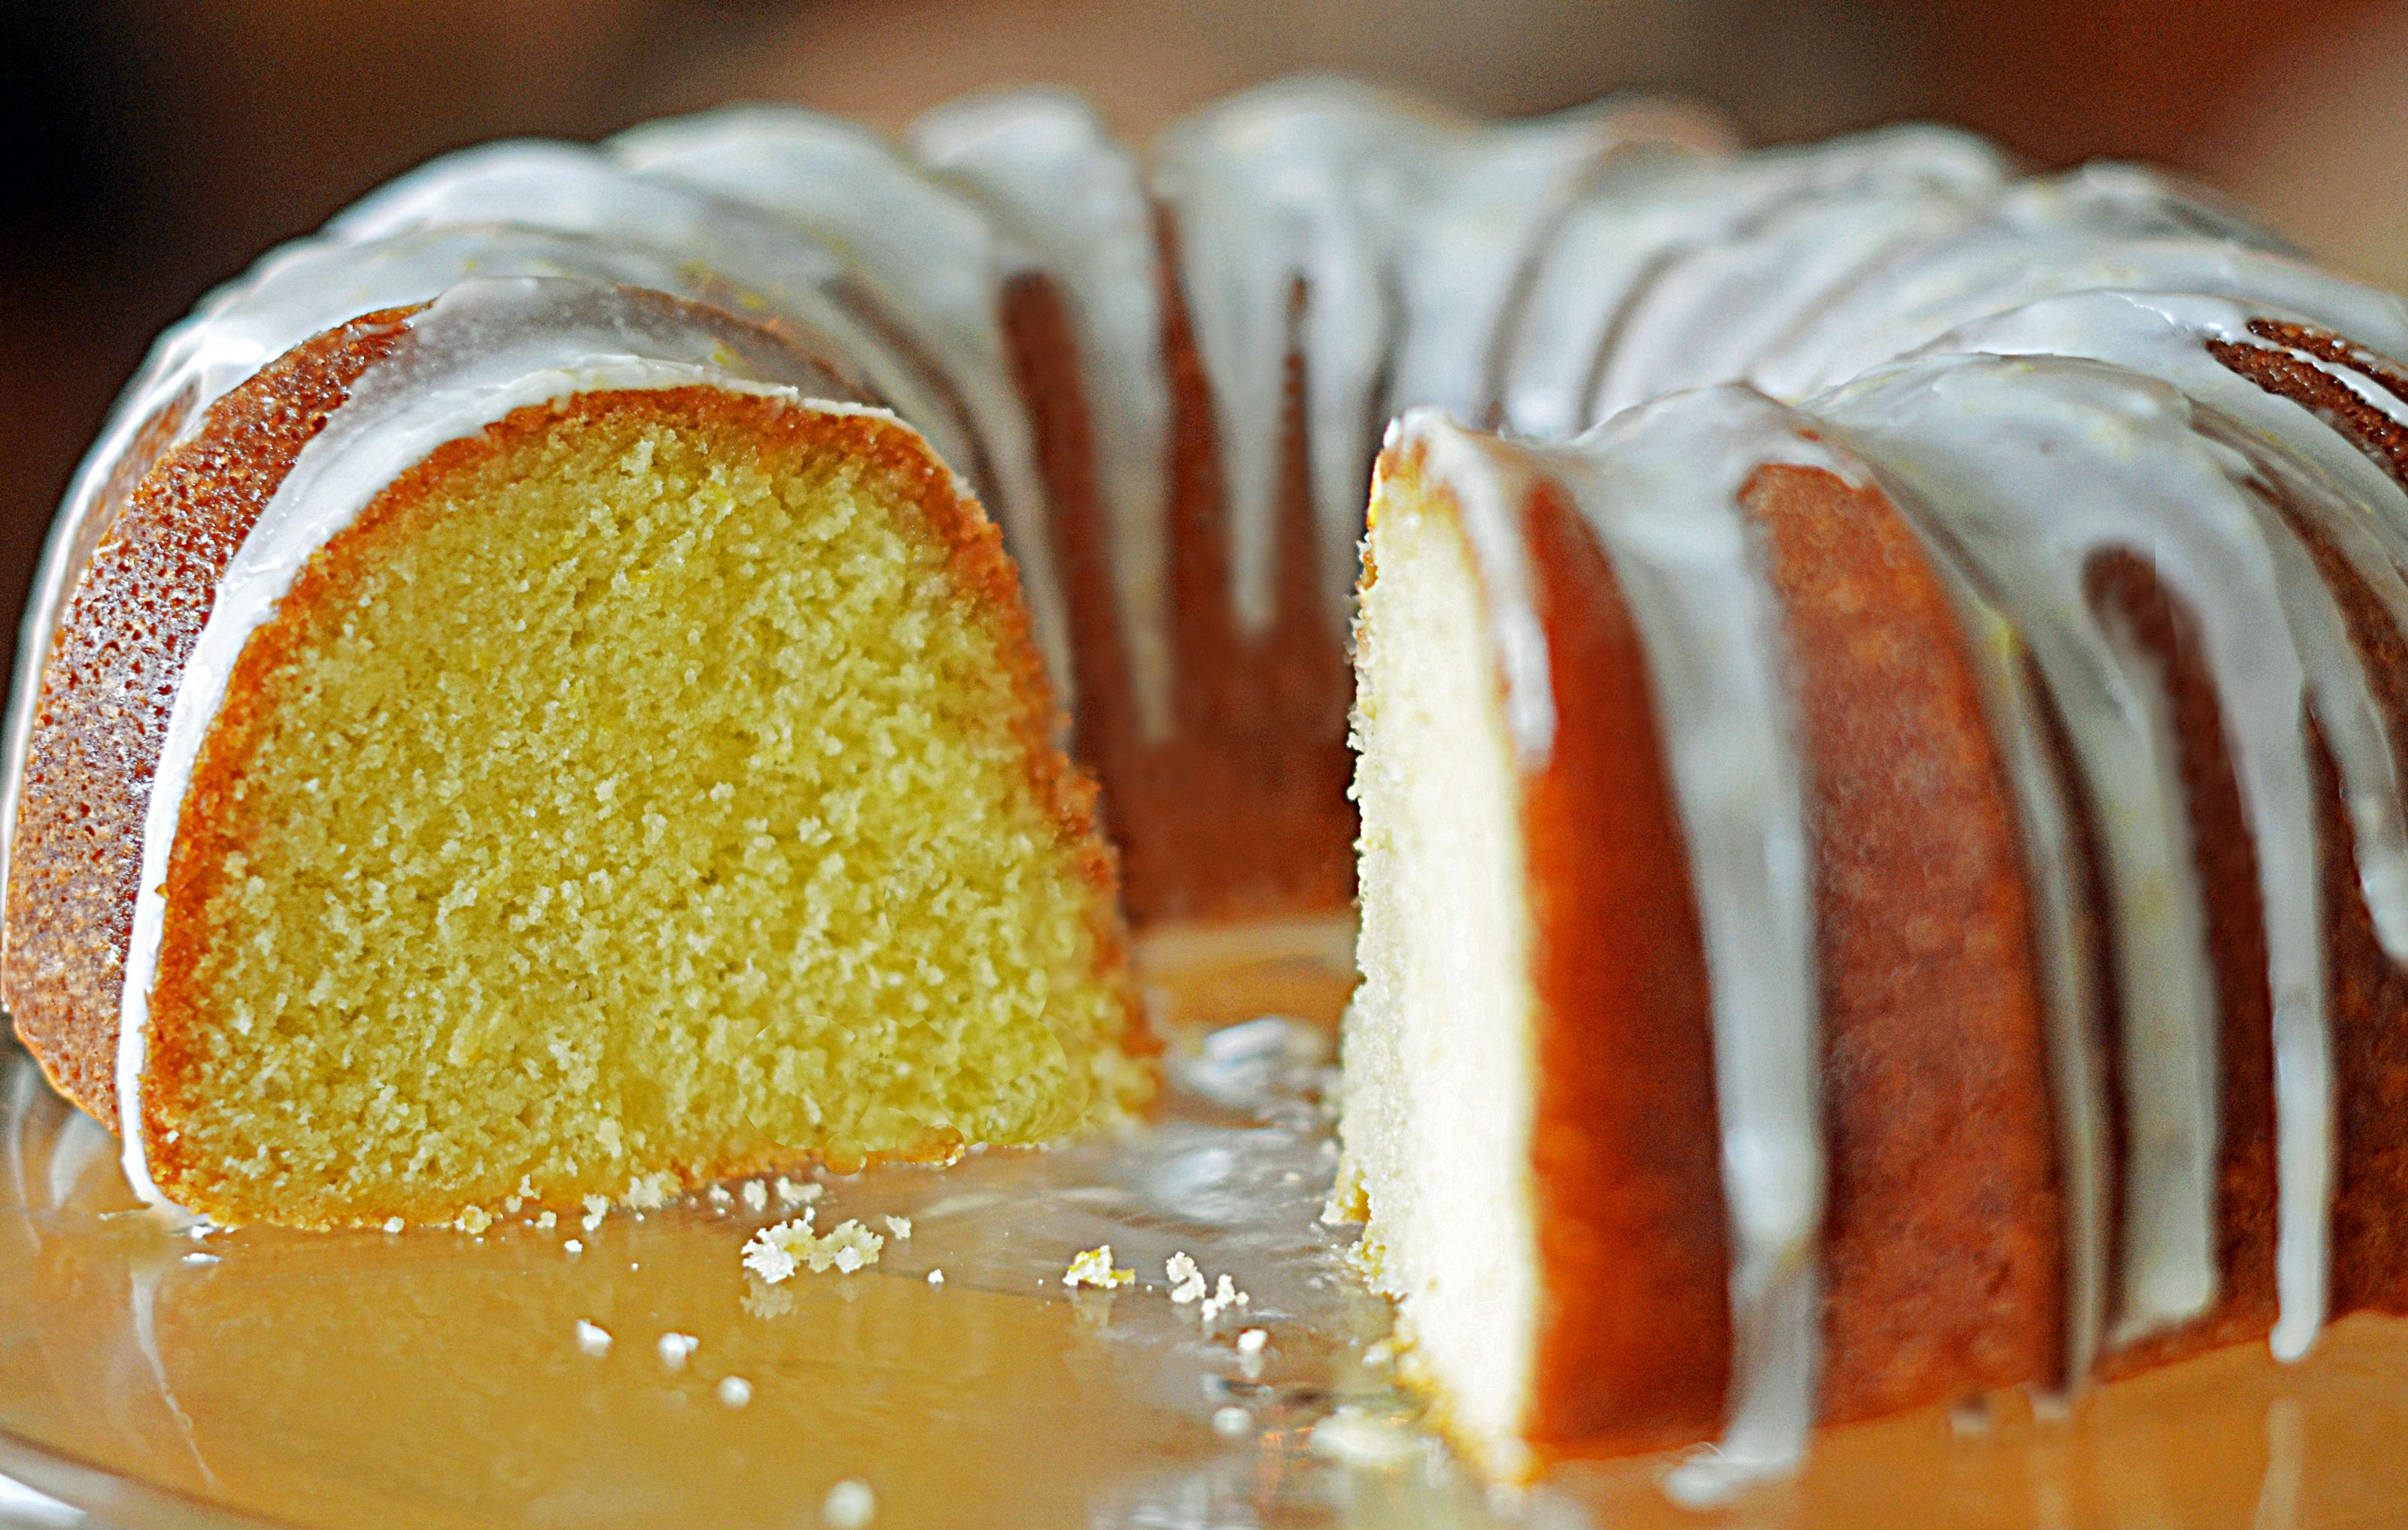 Lemon Pound Cake Recipe With Images Lemon Pound Cake Recipe Lemon Buttermilk Pound Cake Buttermilk Pound Cake